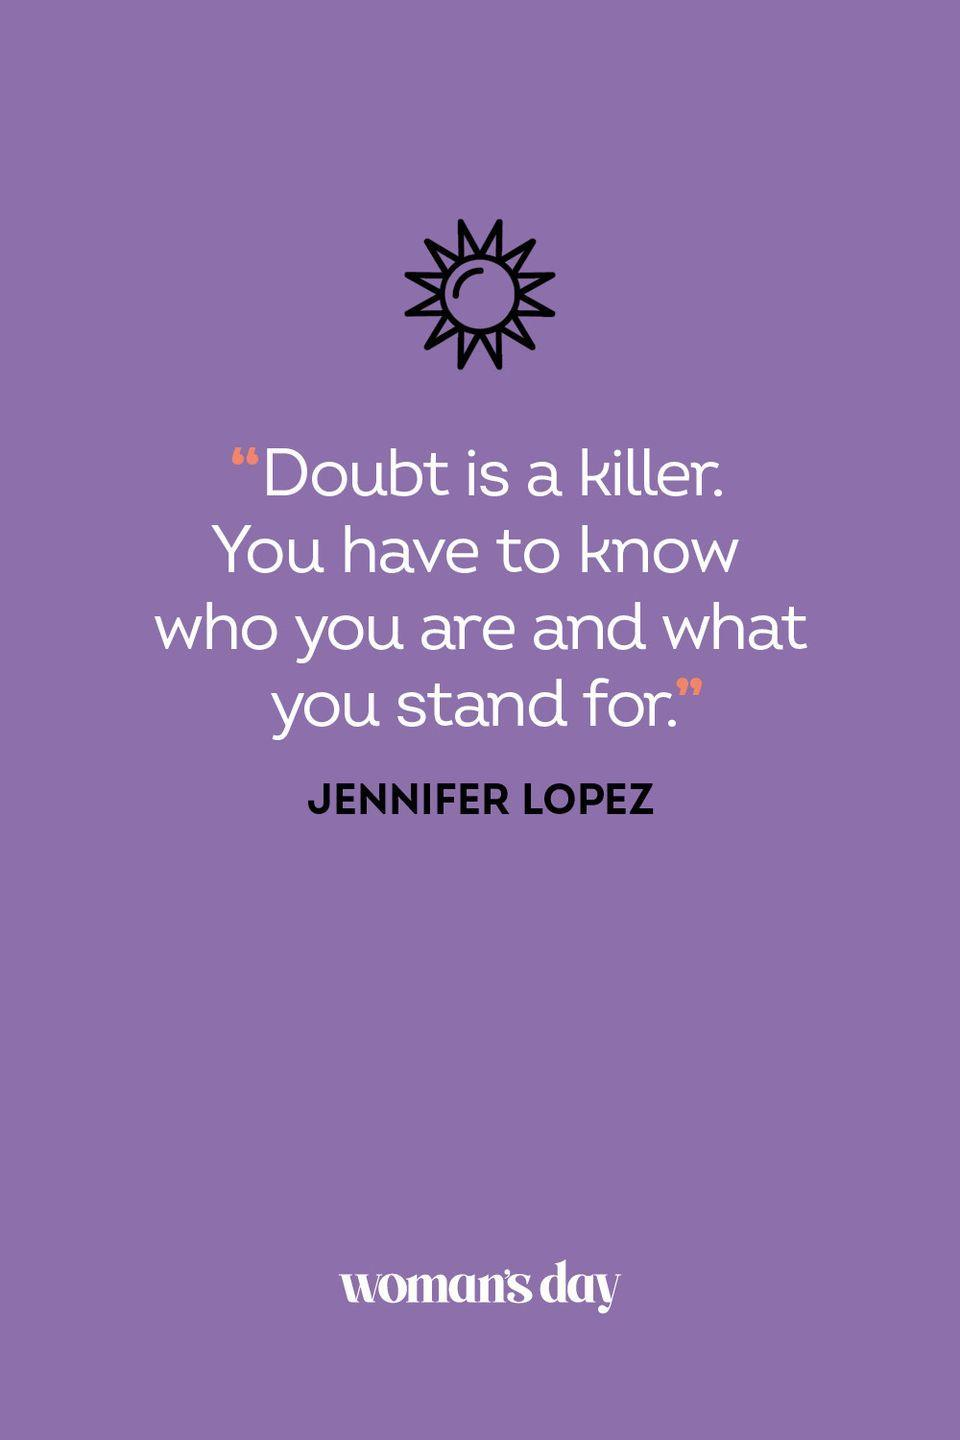 <p>Doubt is a killer. You have to know who you are and what you stand for.</p>